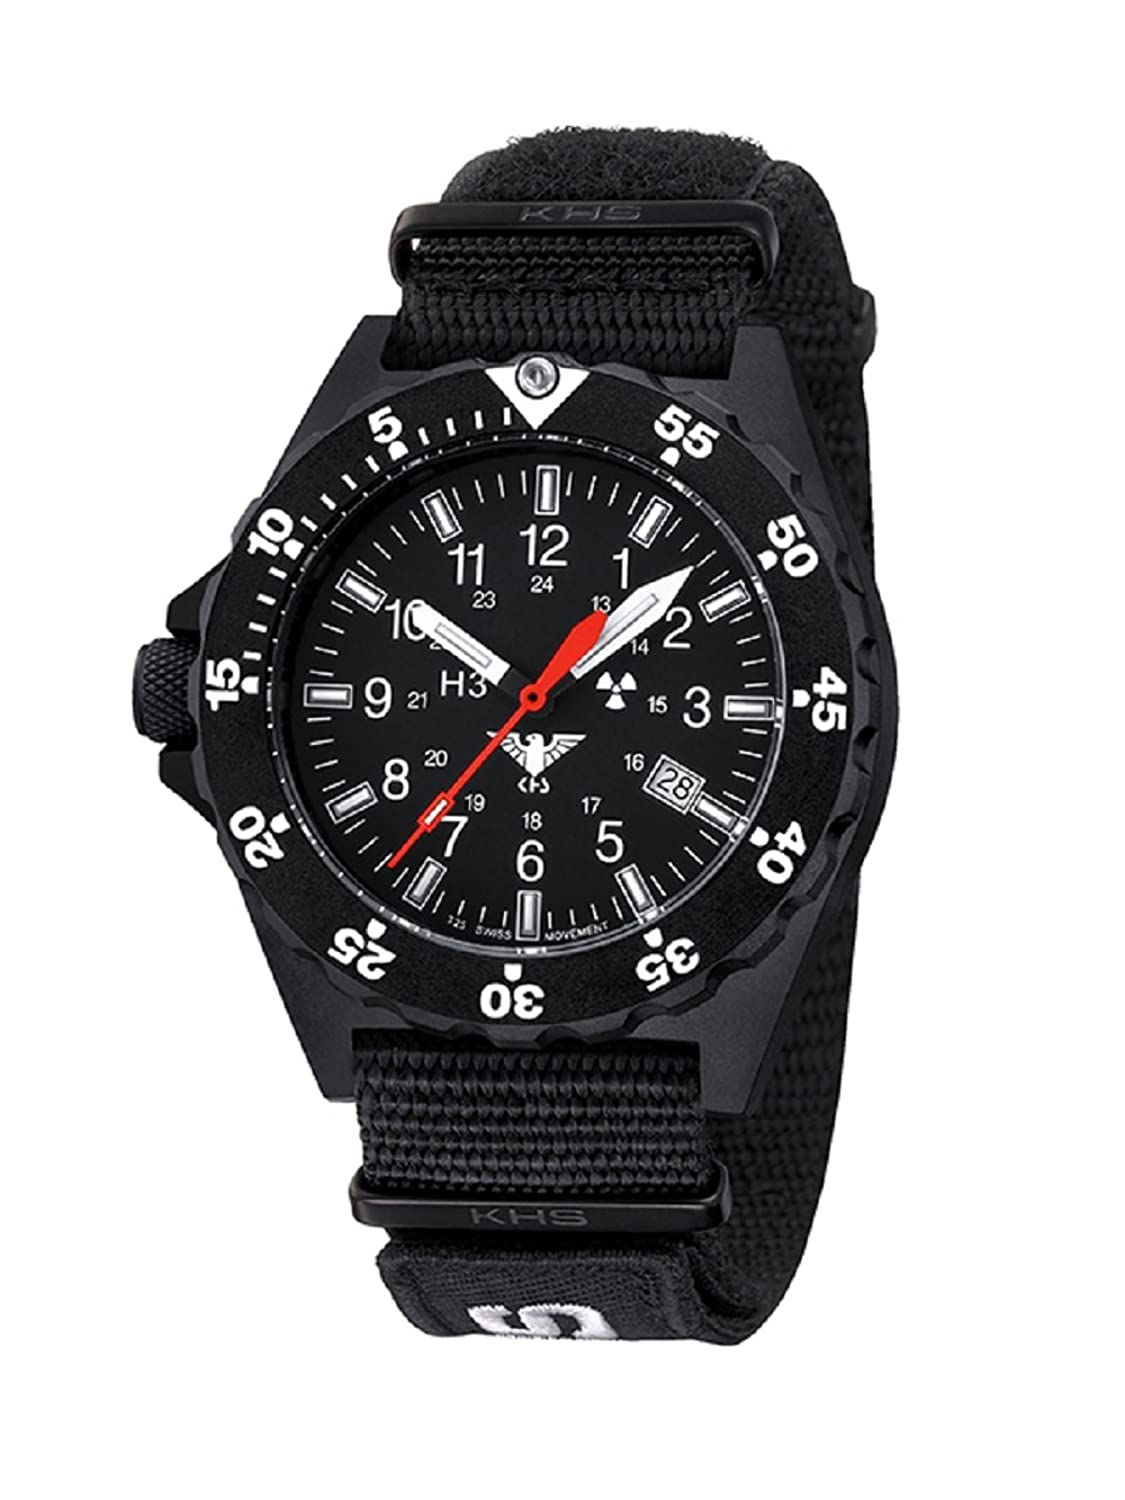 KHS Shooter KHS.SH.NXT7 Natoband schwarz inkl. Watch-Glass-Protection Schutzfolie